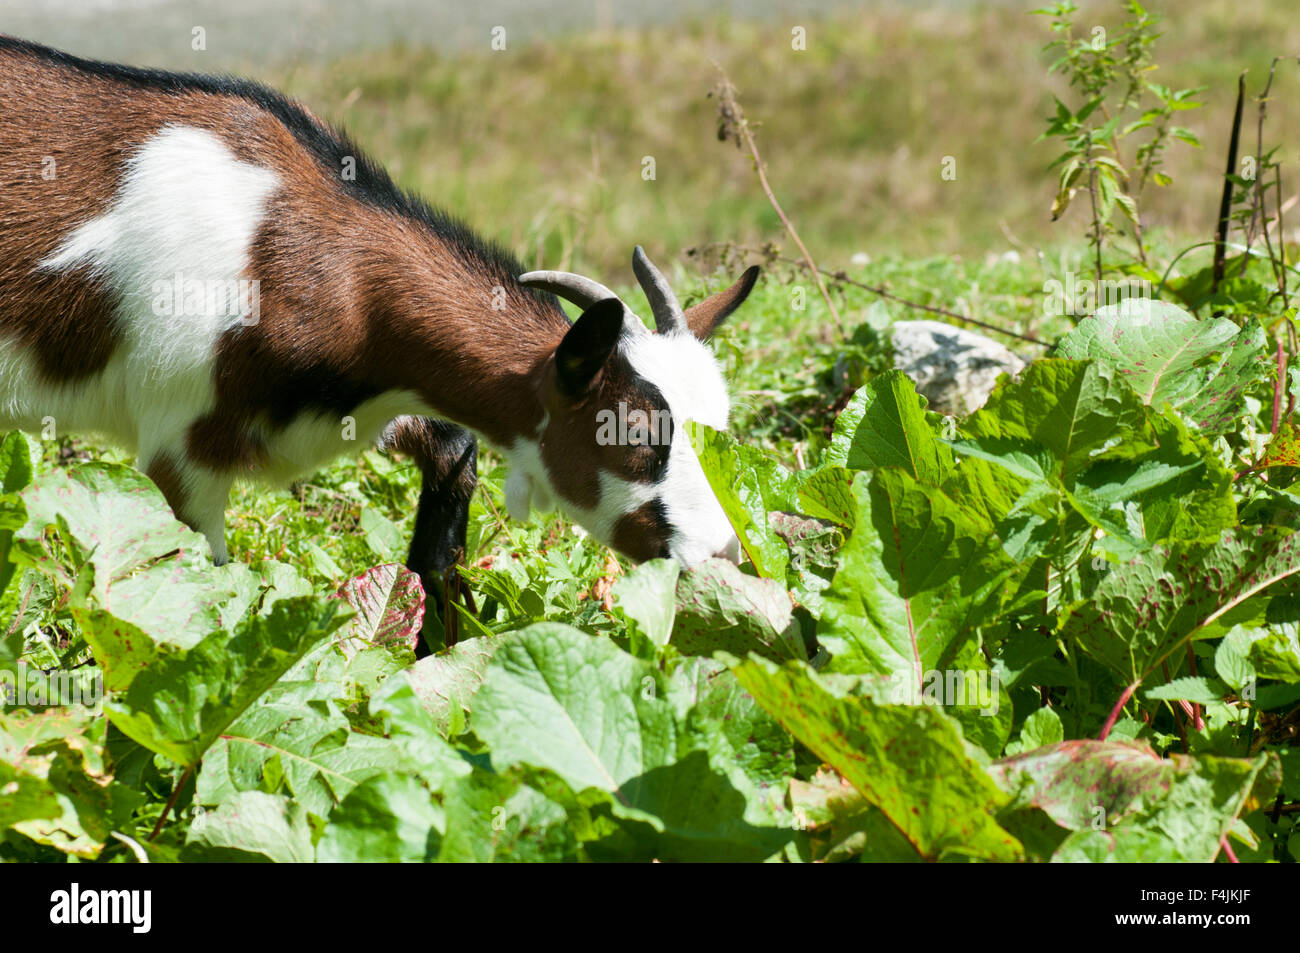 Domestic Pygmy Goat grazing in a field Photographed in Tyrol Austria - Stock Image